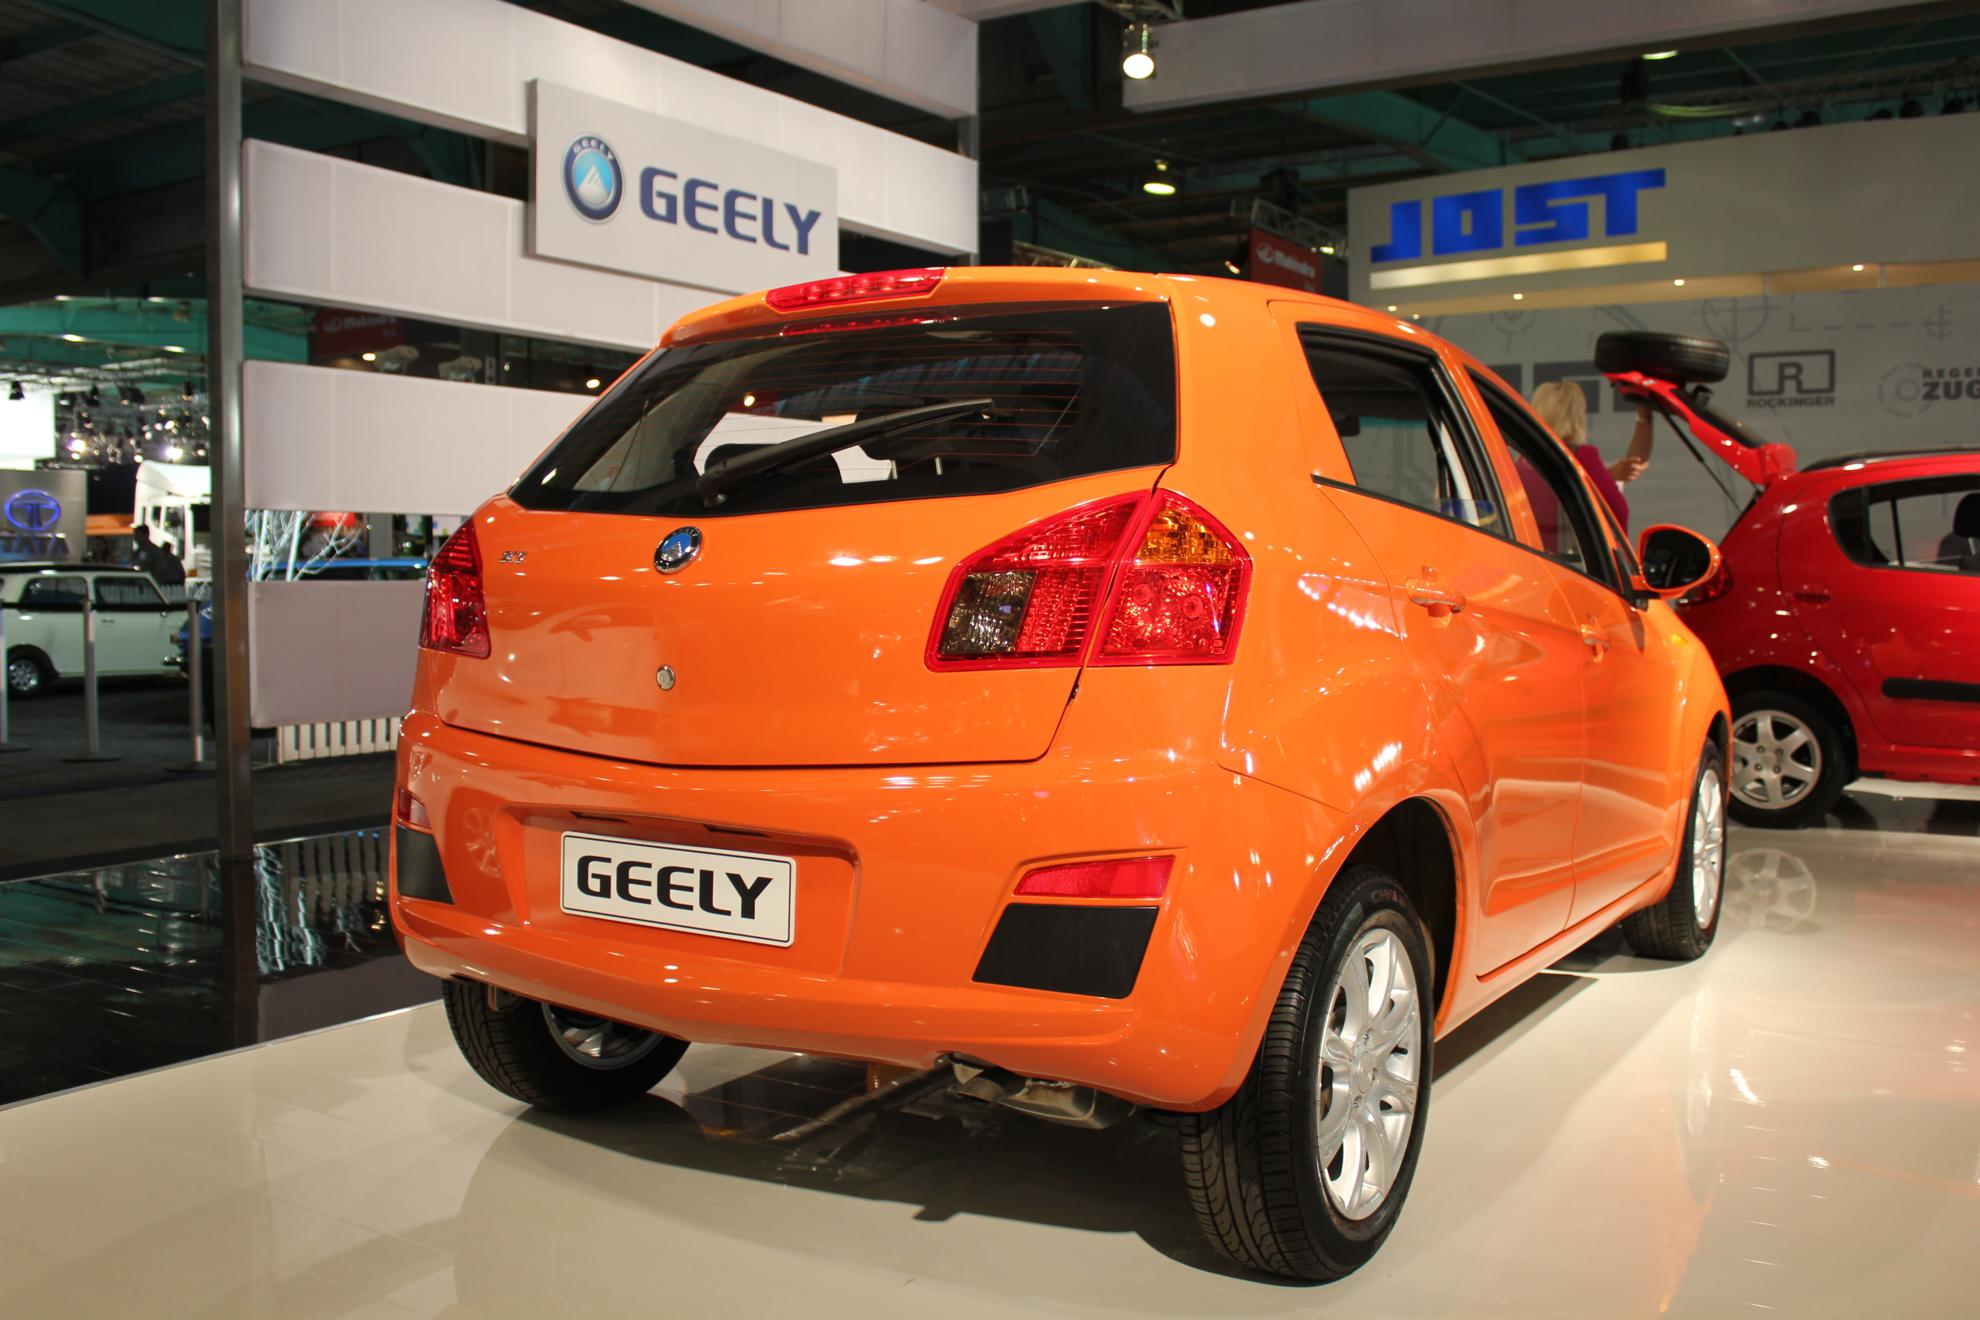 Geely at the Car Show